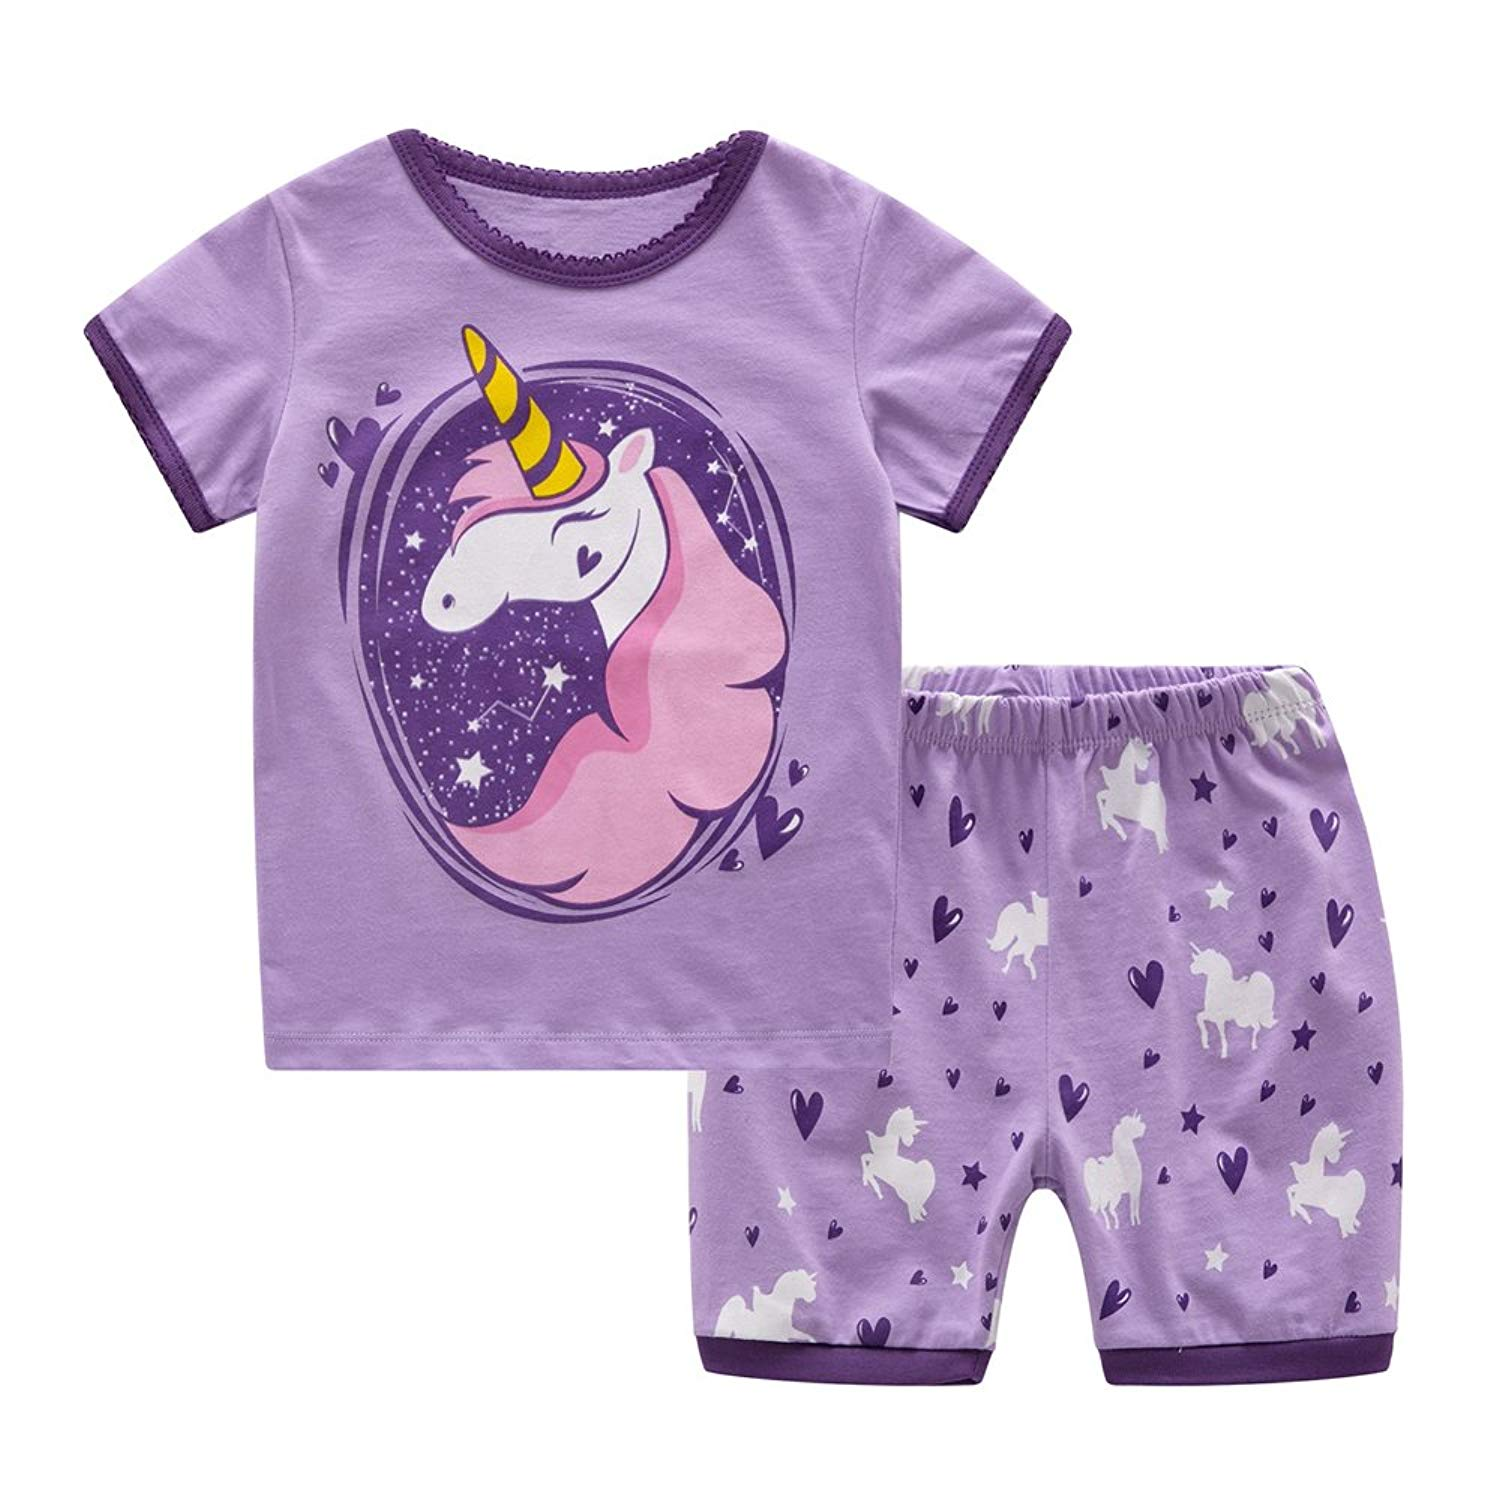 016dbdc575bd Cheap Cute Pajamas For Little Girls